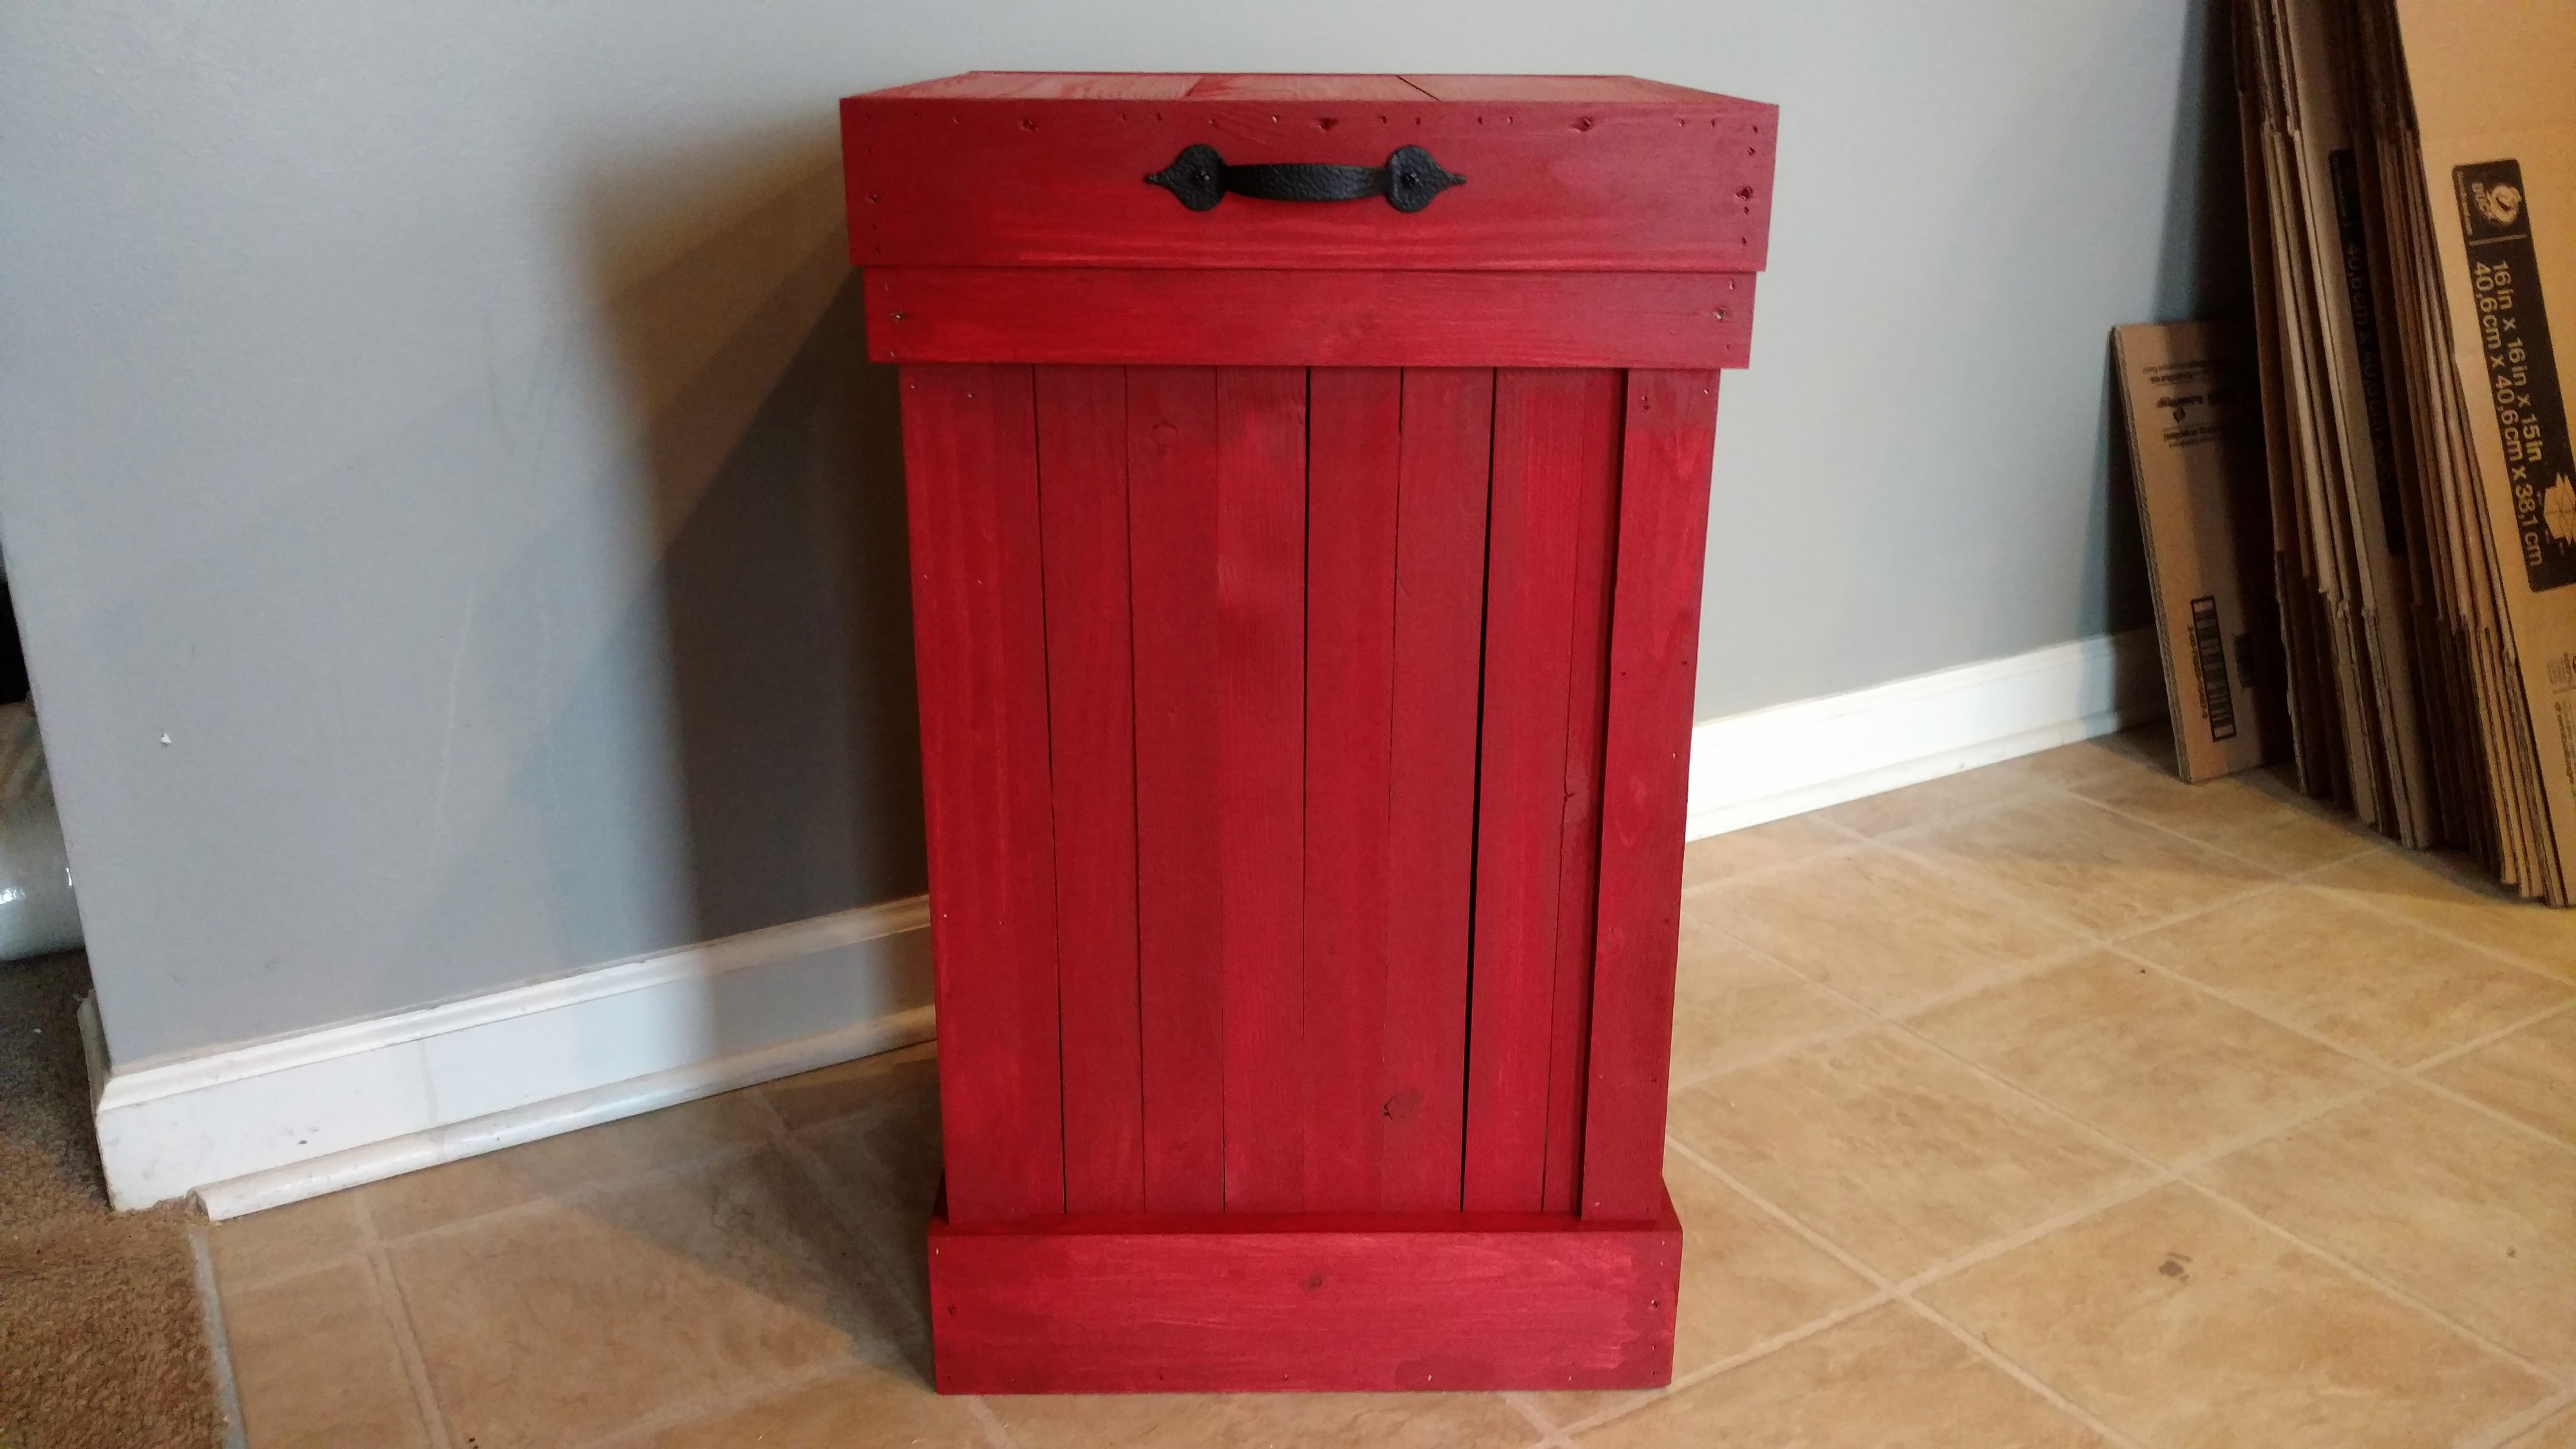 Primitive Red Rustic Wood 13 Gallon Trash Can, Garbage Can, Kitchen Storage  sold by Simply Rustic Furnishings